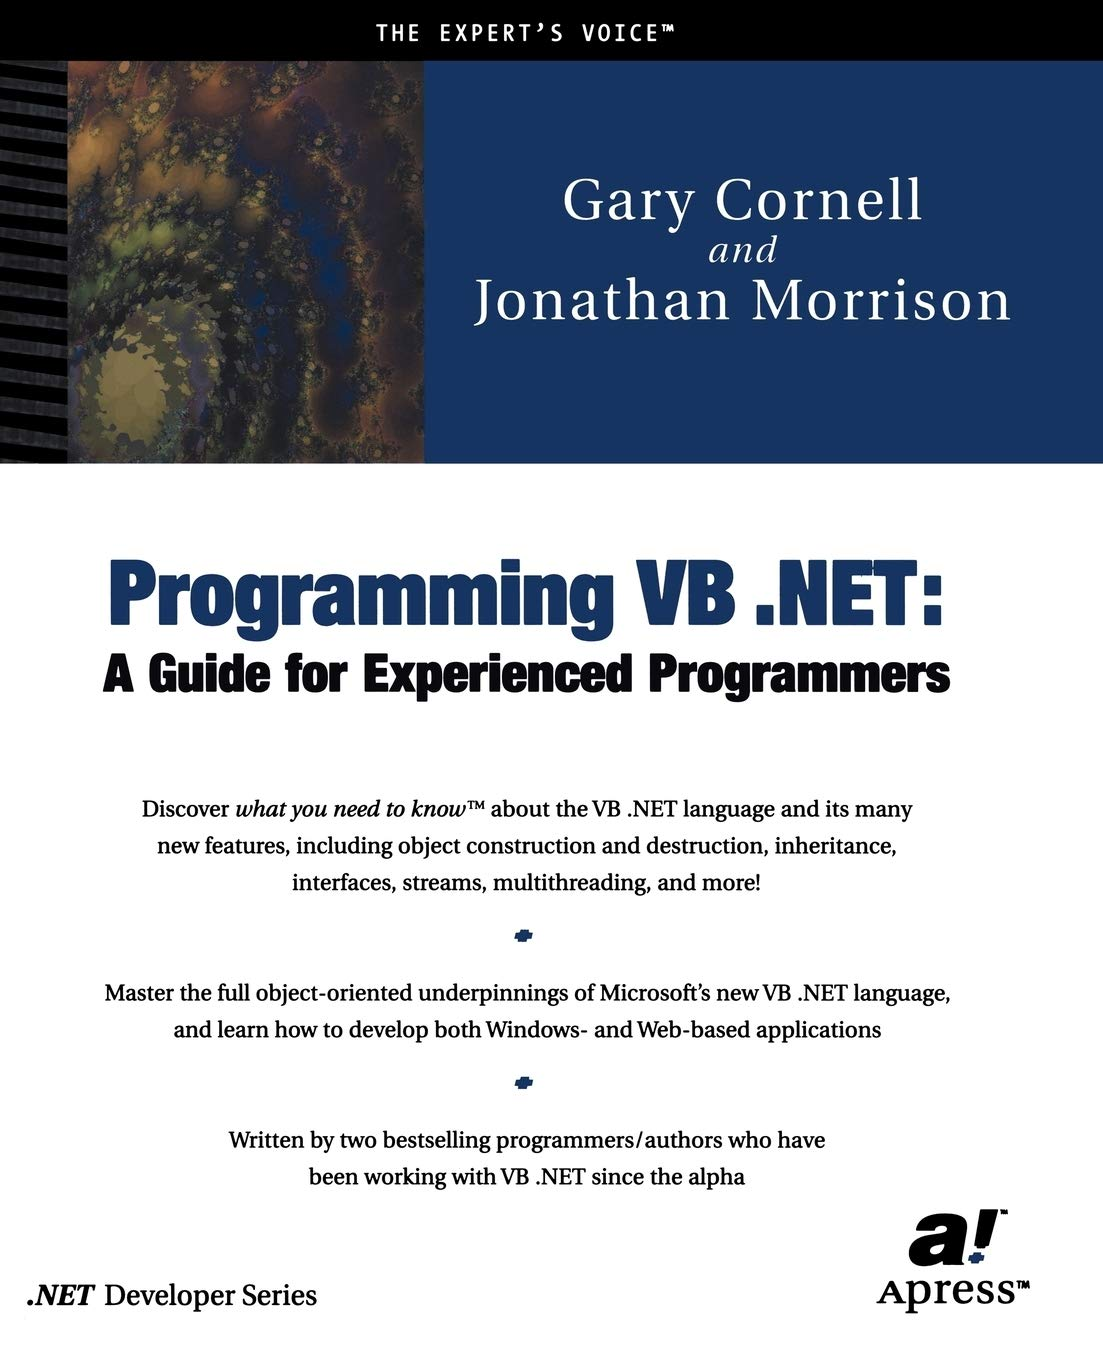 Programming VB .NET: A Guide For Experienced Programmers